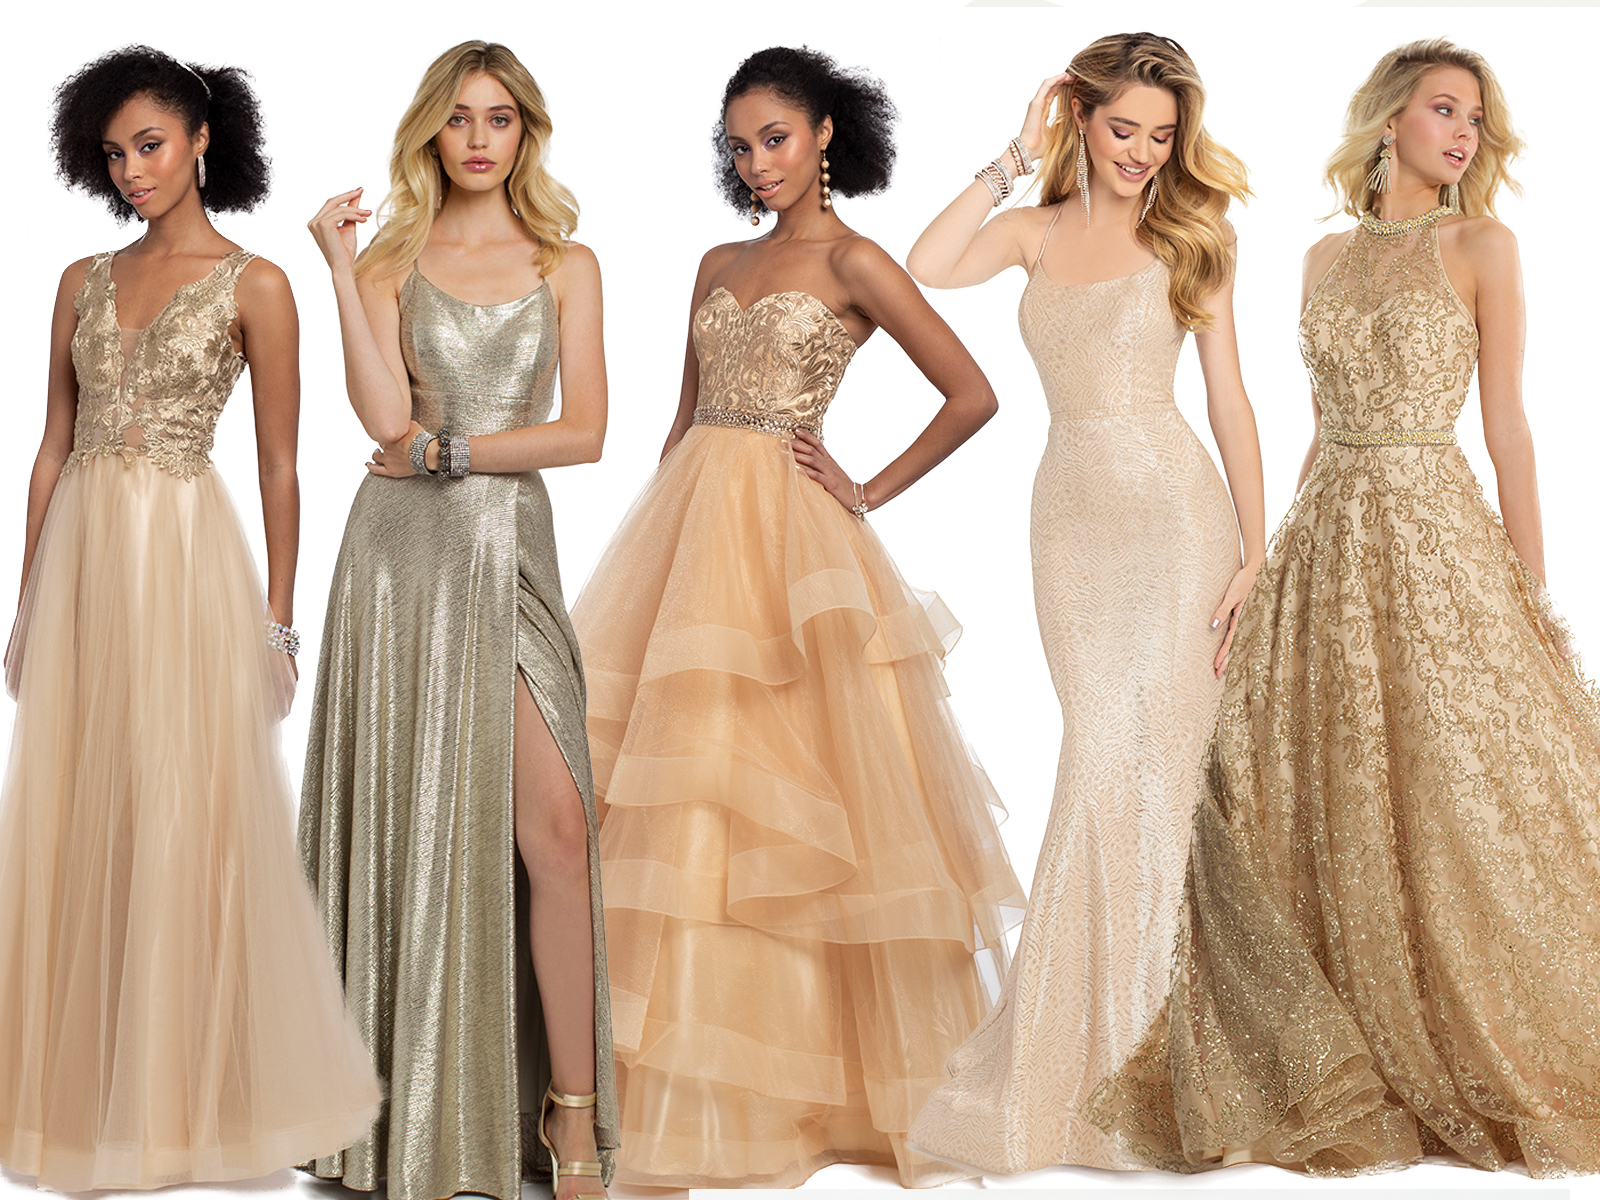 Gold Prom Dresses by Camille La Vie